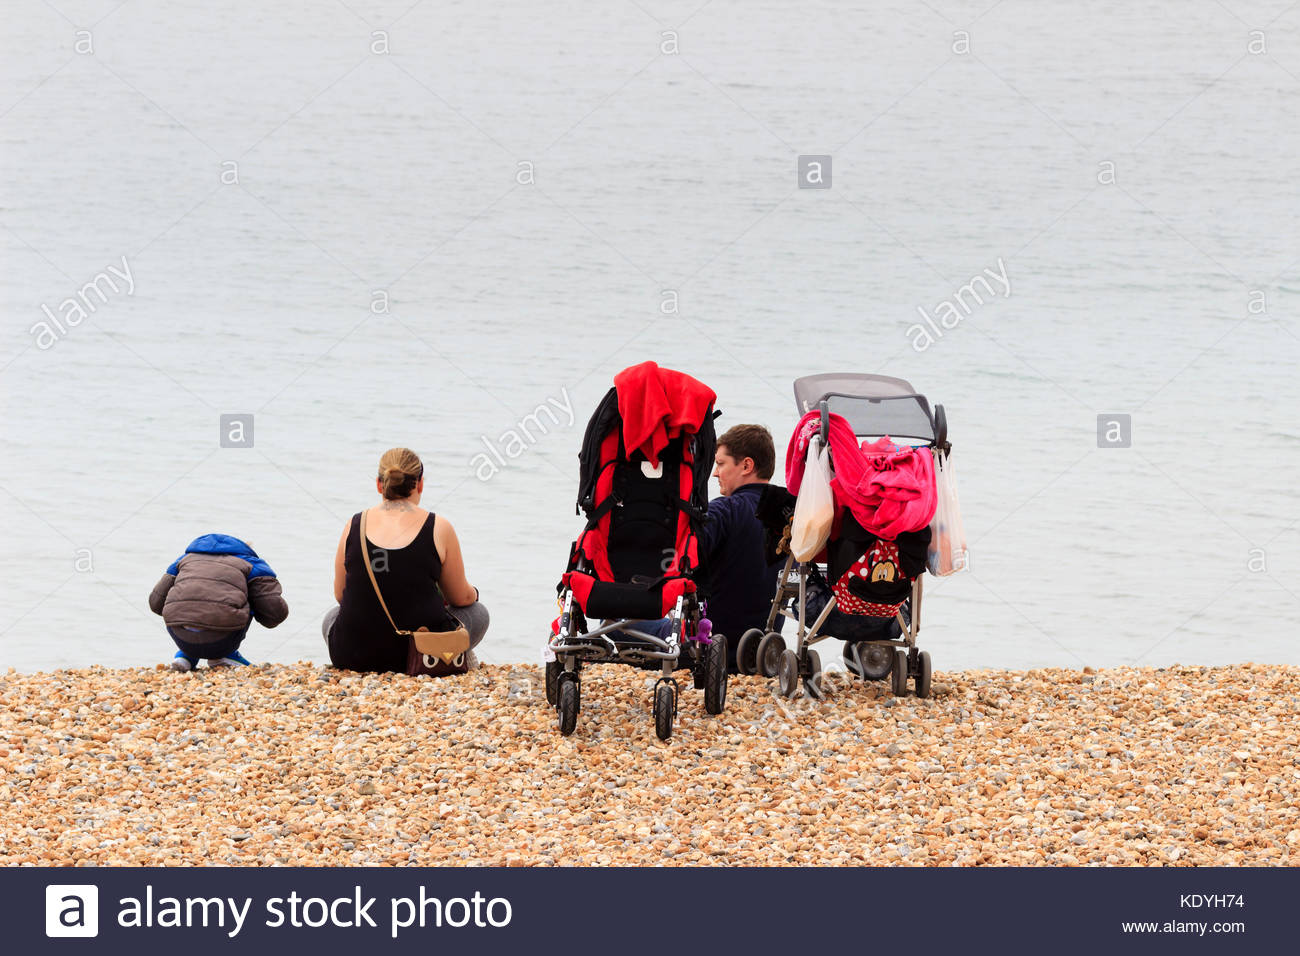 Family enjoying sitting on the shingle beach at Lyme Regis, Dorset, despite overcast, gloomy conditions - Stock Image